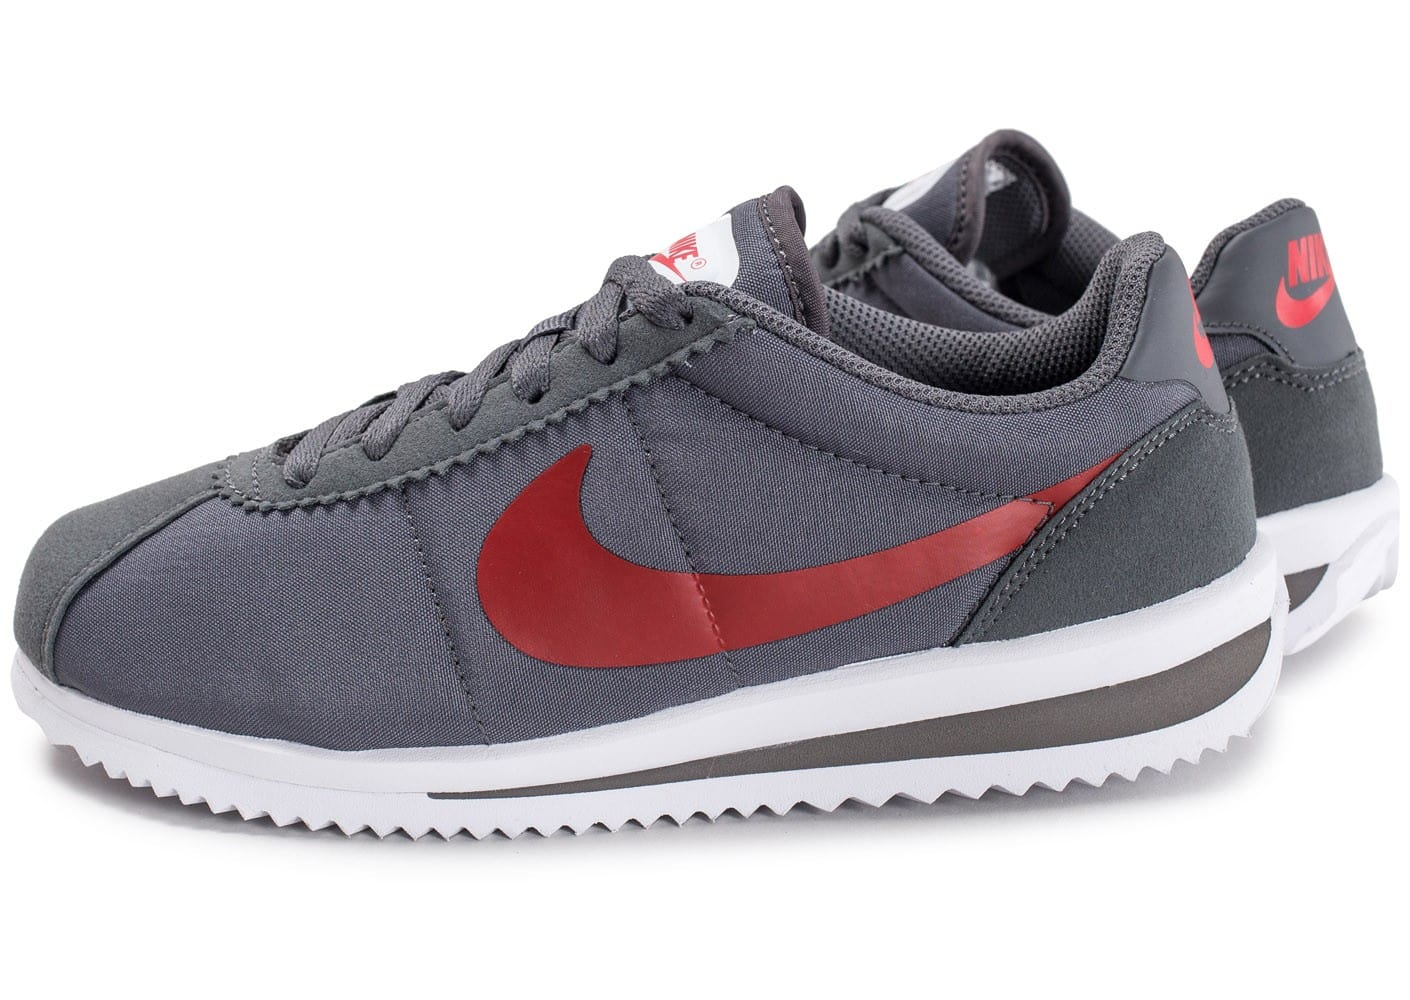 nike cortez ultra junior grise et rouge chaussures enfant chausport. Black Bedroom Furniture Sets. Home Design Ideas